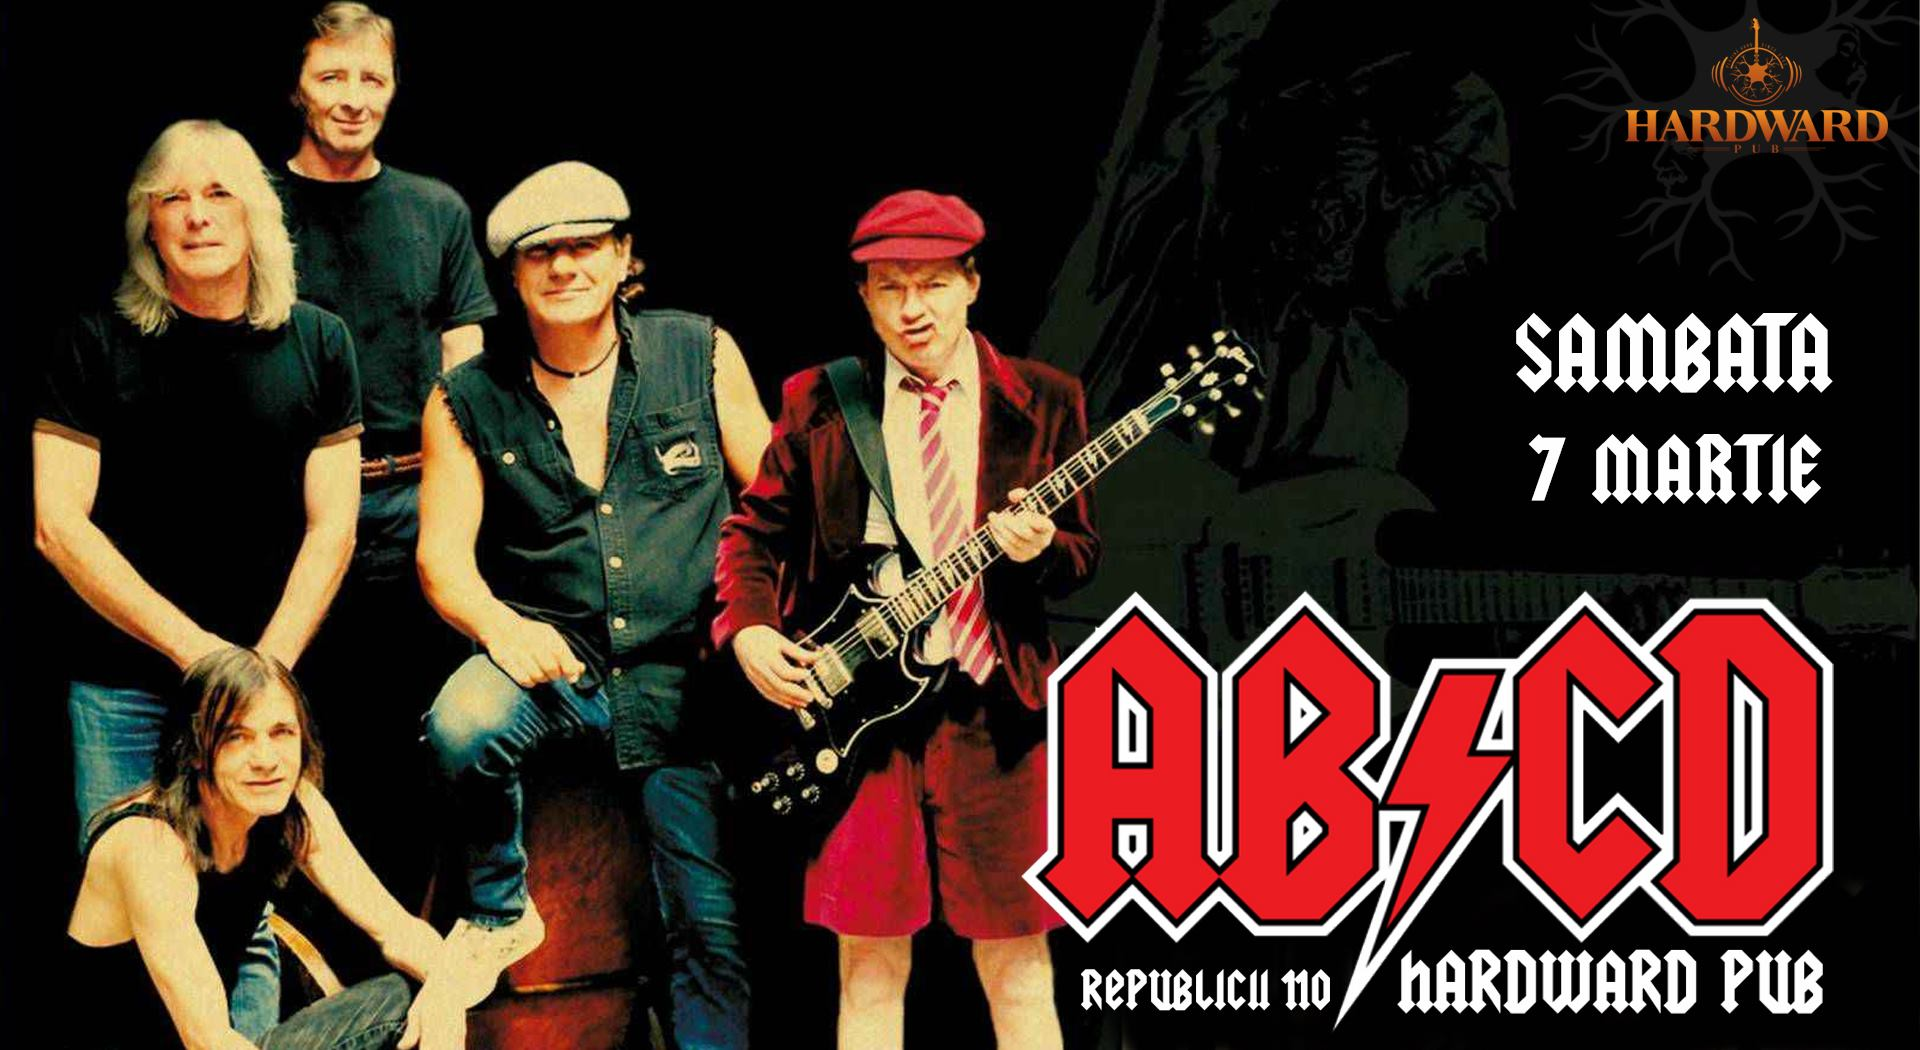 AB/CD: AC/DC Tribute @ HardwardPub